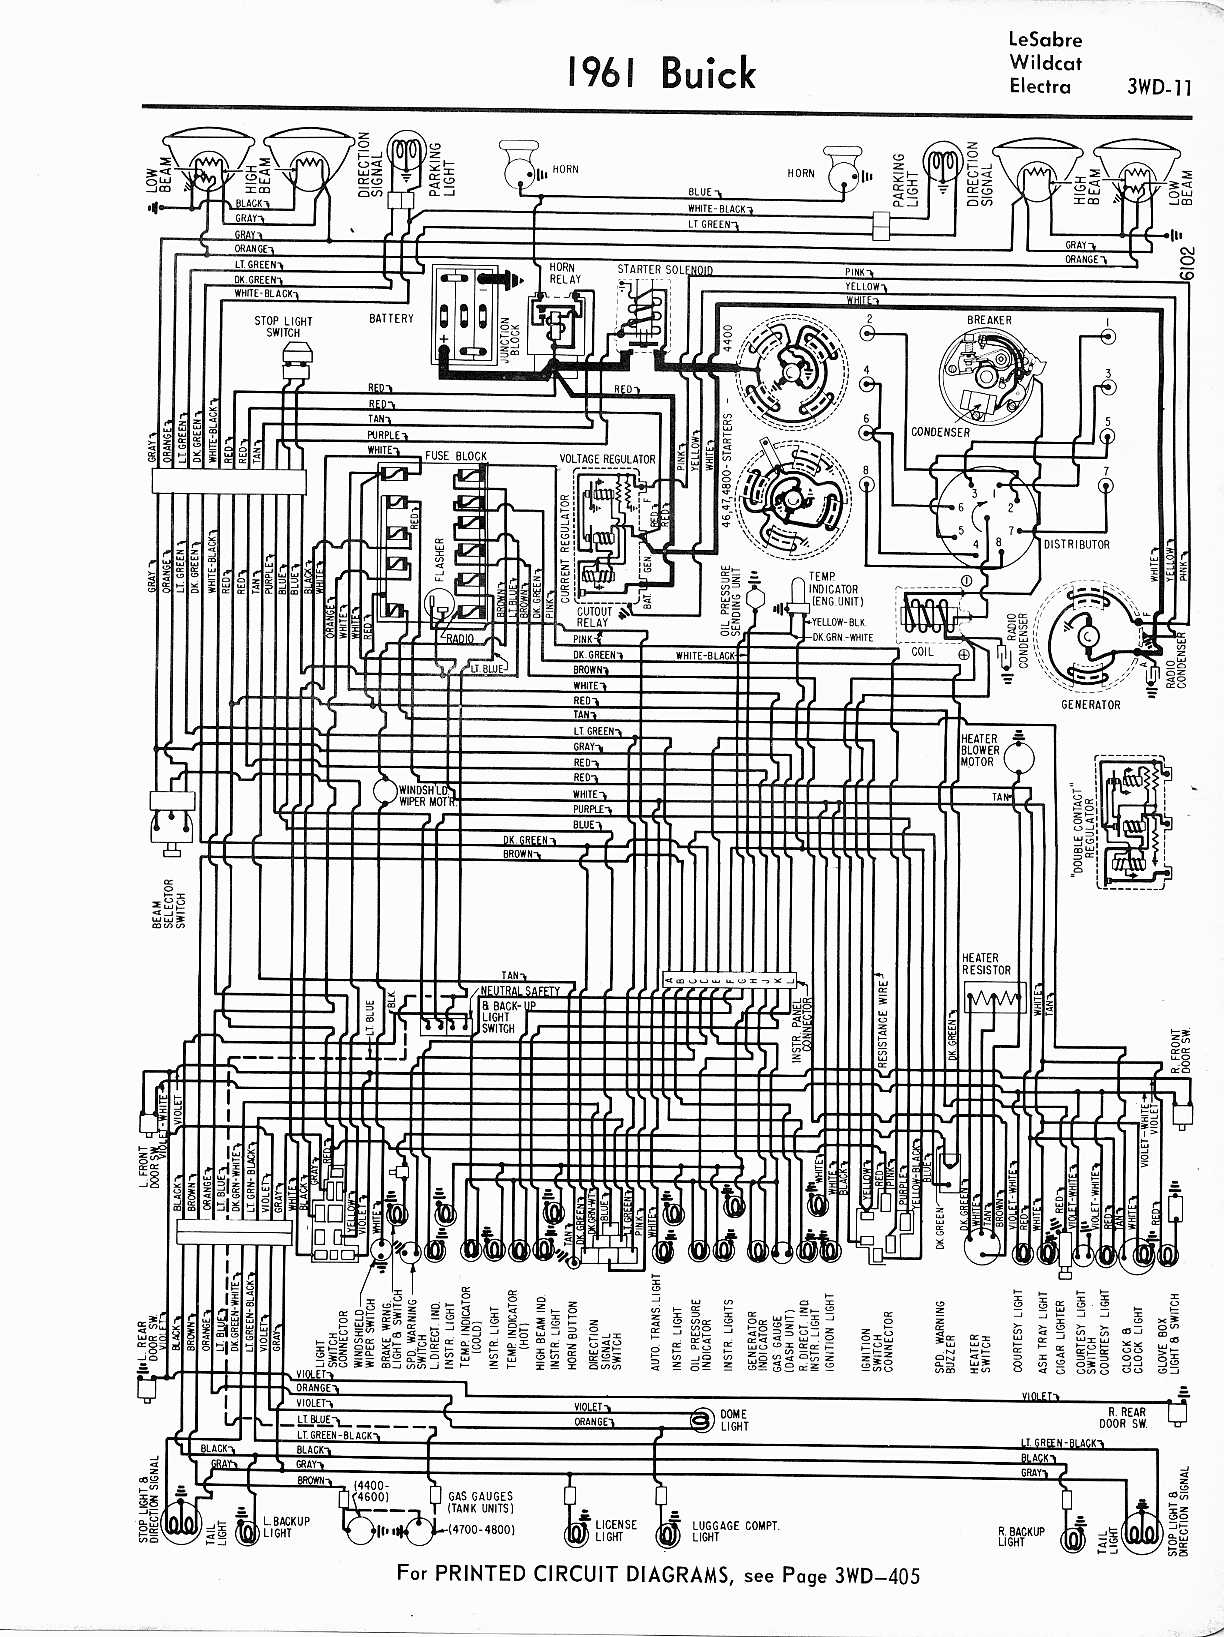 95 buick lesabre brake system diagram block and schematic diagrams u2022 rh lazysupply co 95 buick lesabre wiring diagram 95 buick lesabre horn fuse location